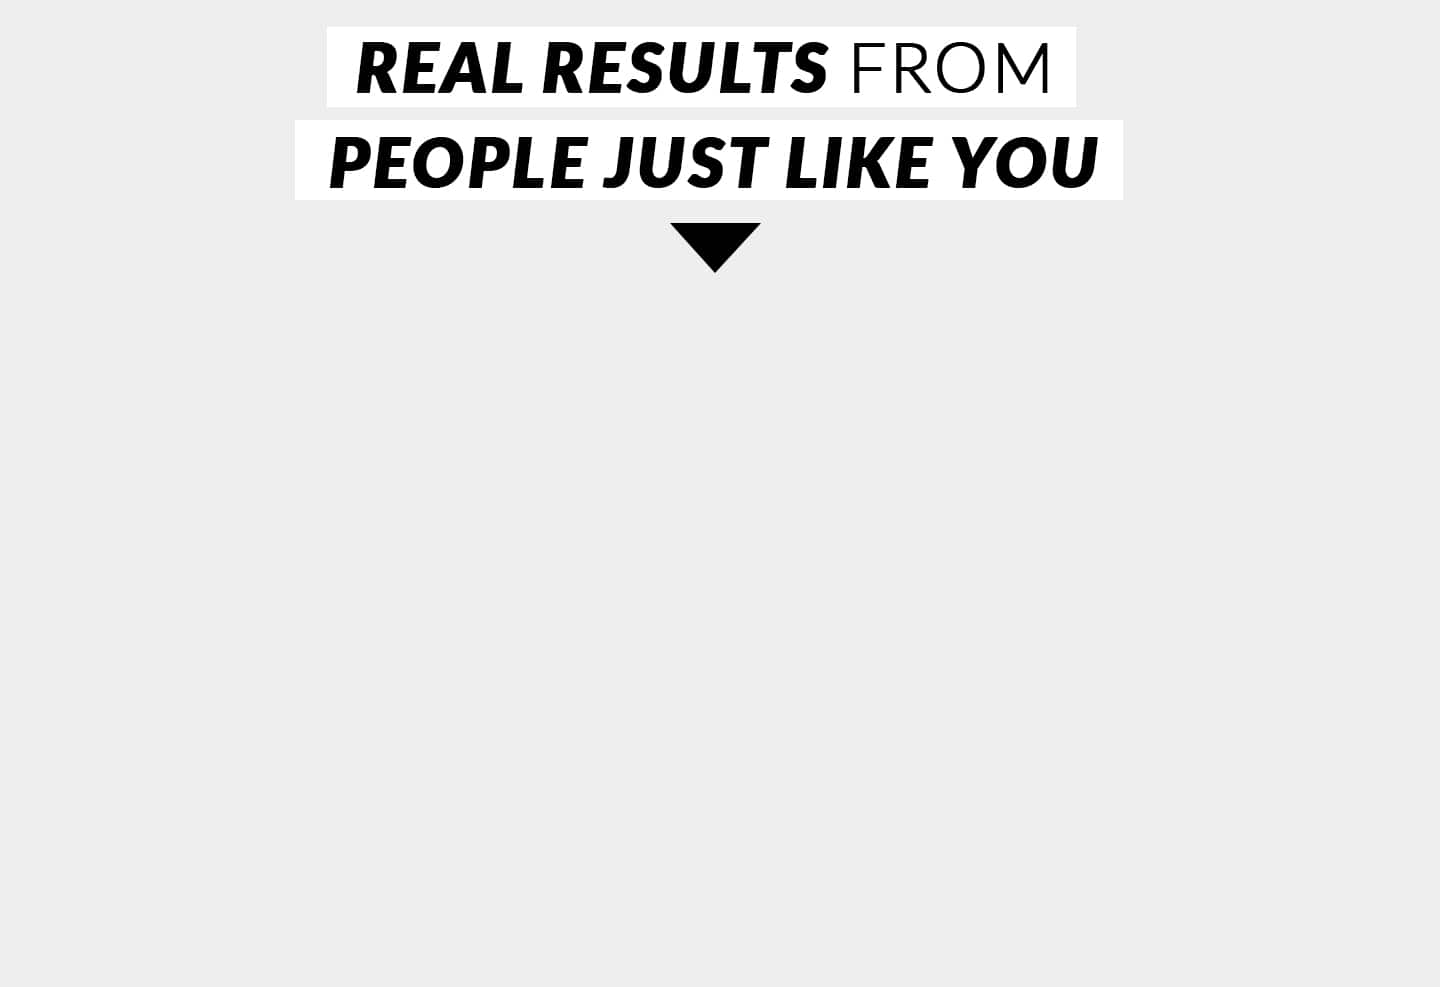 REAL RESULTS FROM PEOPLE JUST LIKE YOU